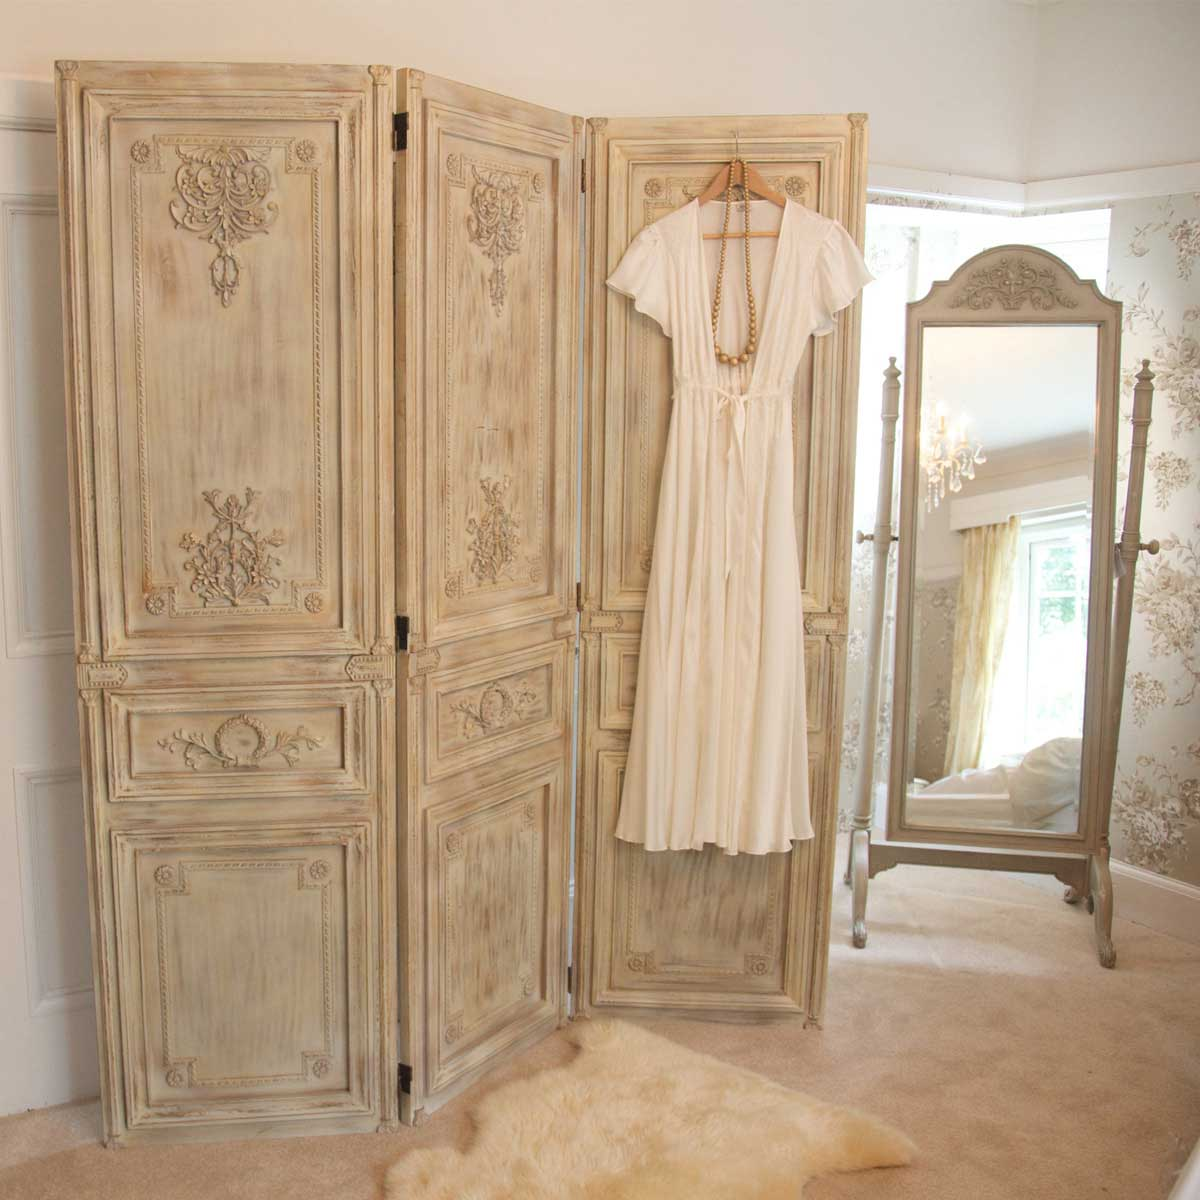 Limed Oak Bedroom Furniture Limed Wooden Dressing Screen Home Decor